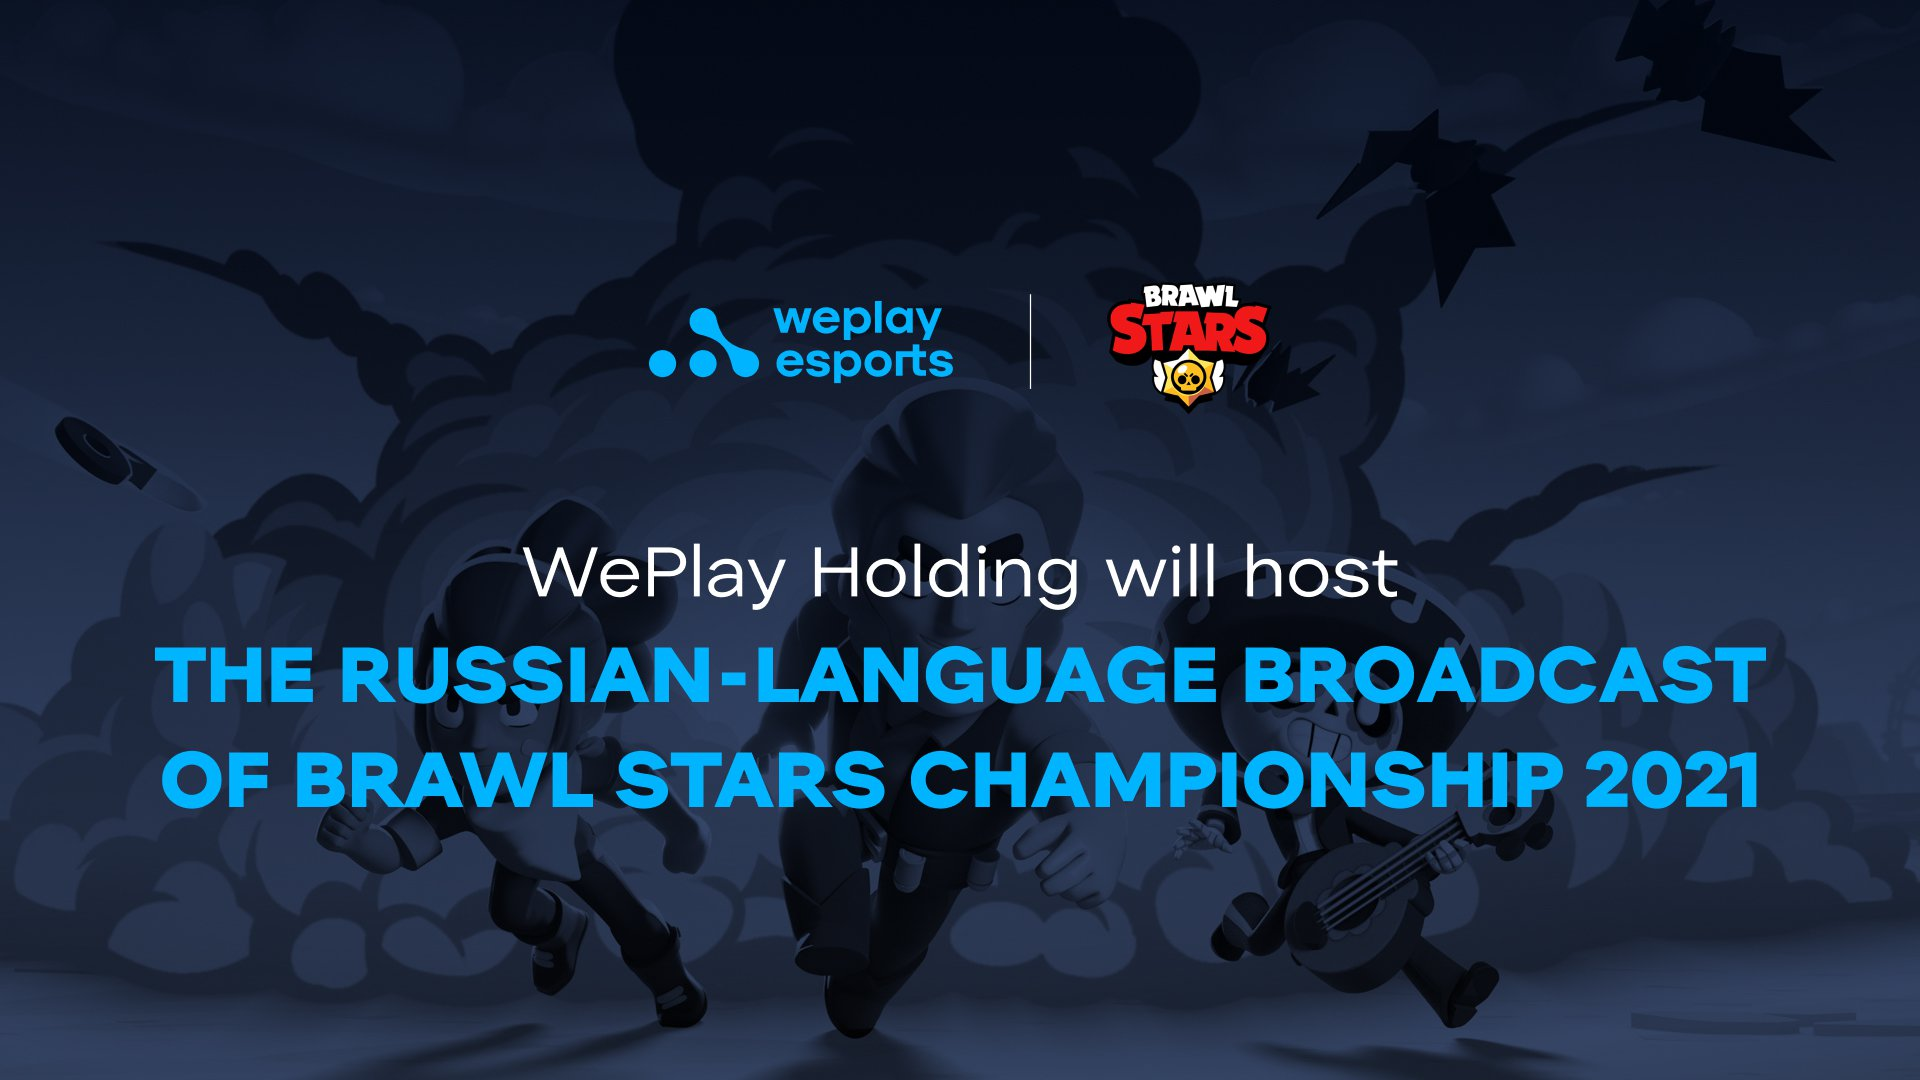 WePlay Holding will host the Russian-language broadcast of Brawl Stars Championship 2021. Image: WePlay Holding